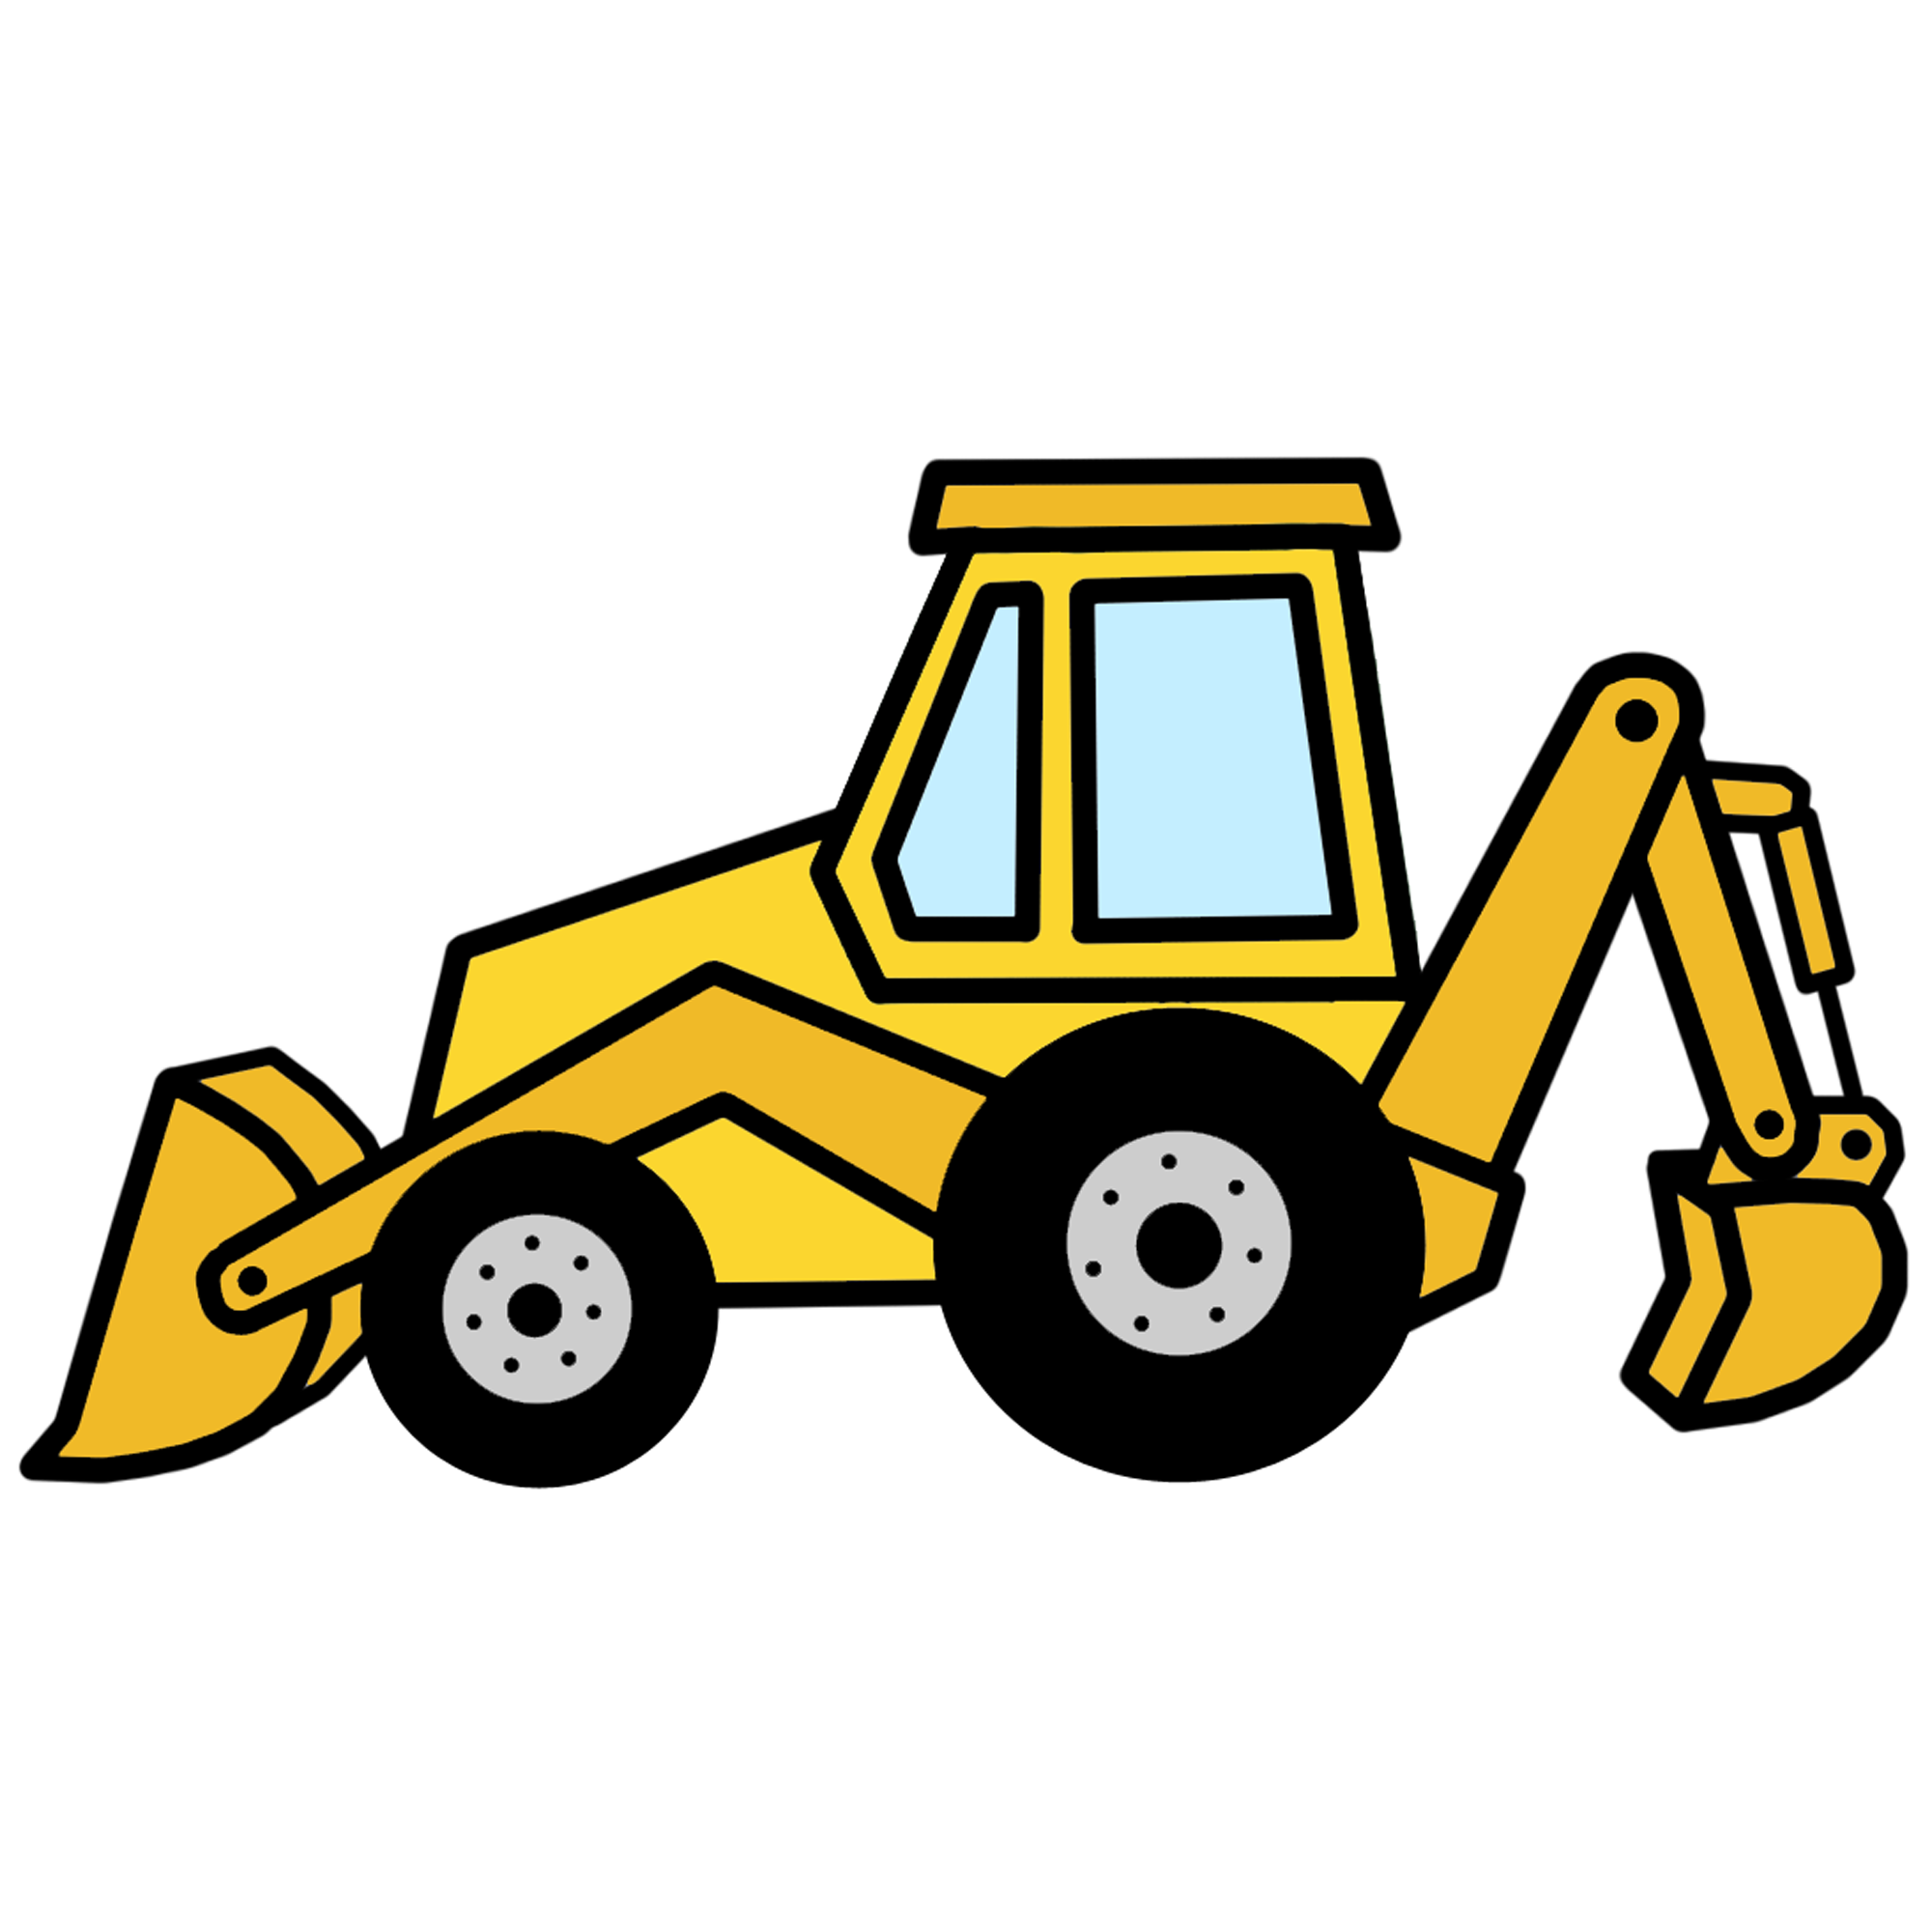 Backhoe loader clipart clipart images gallery for free.